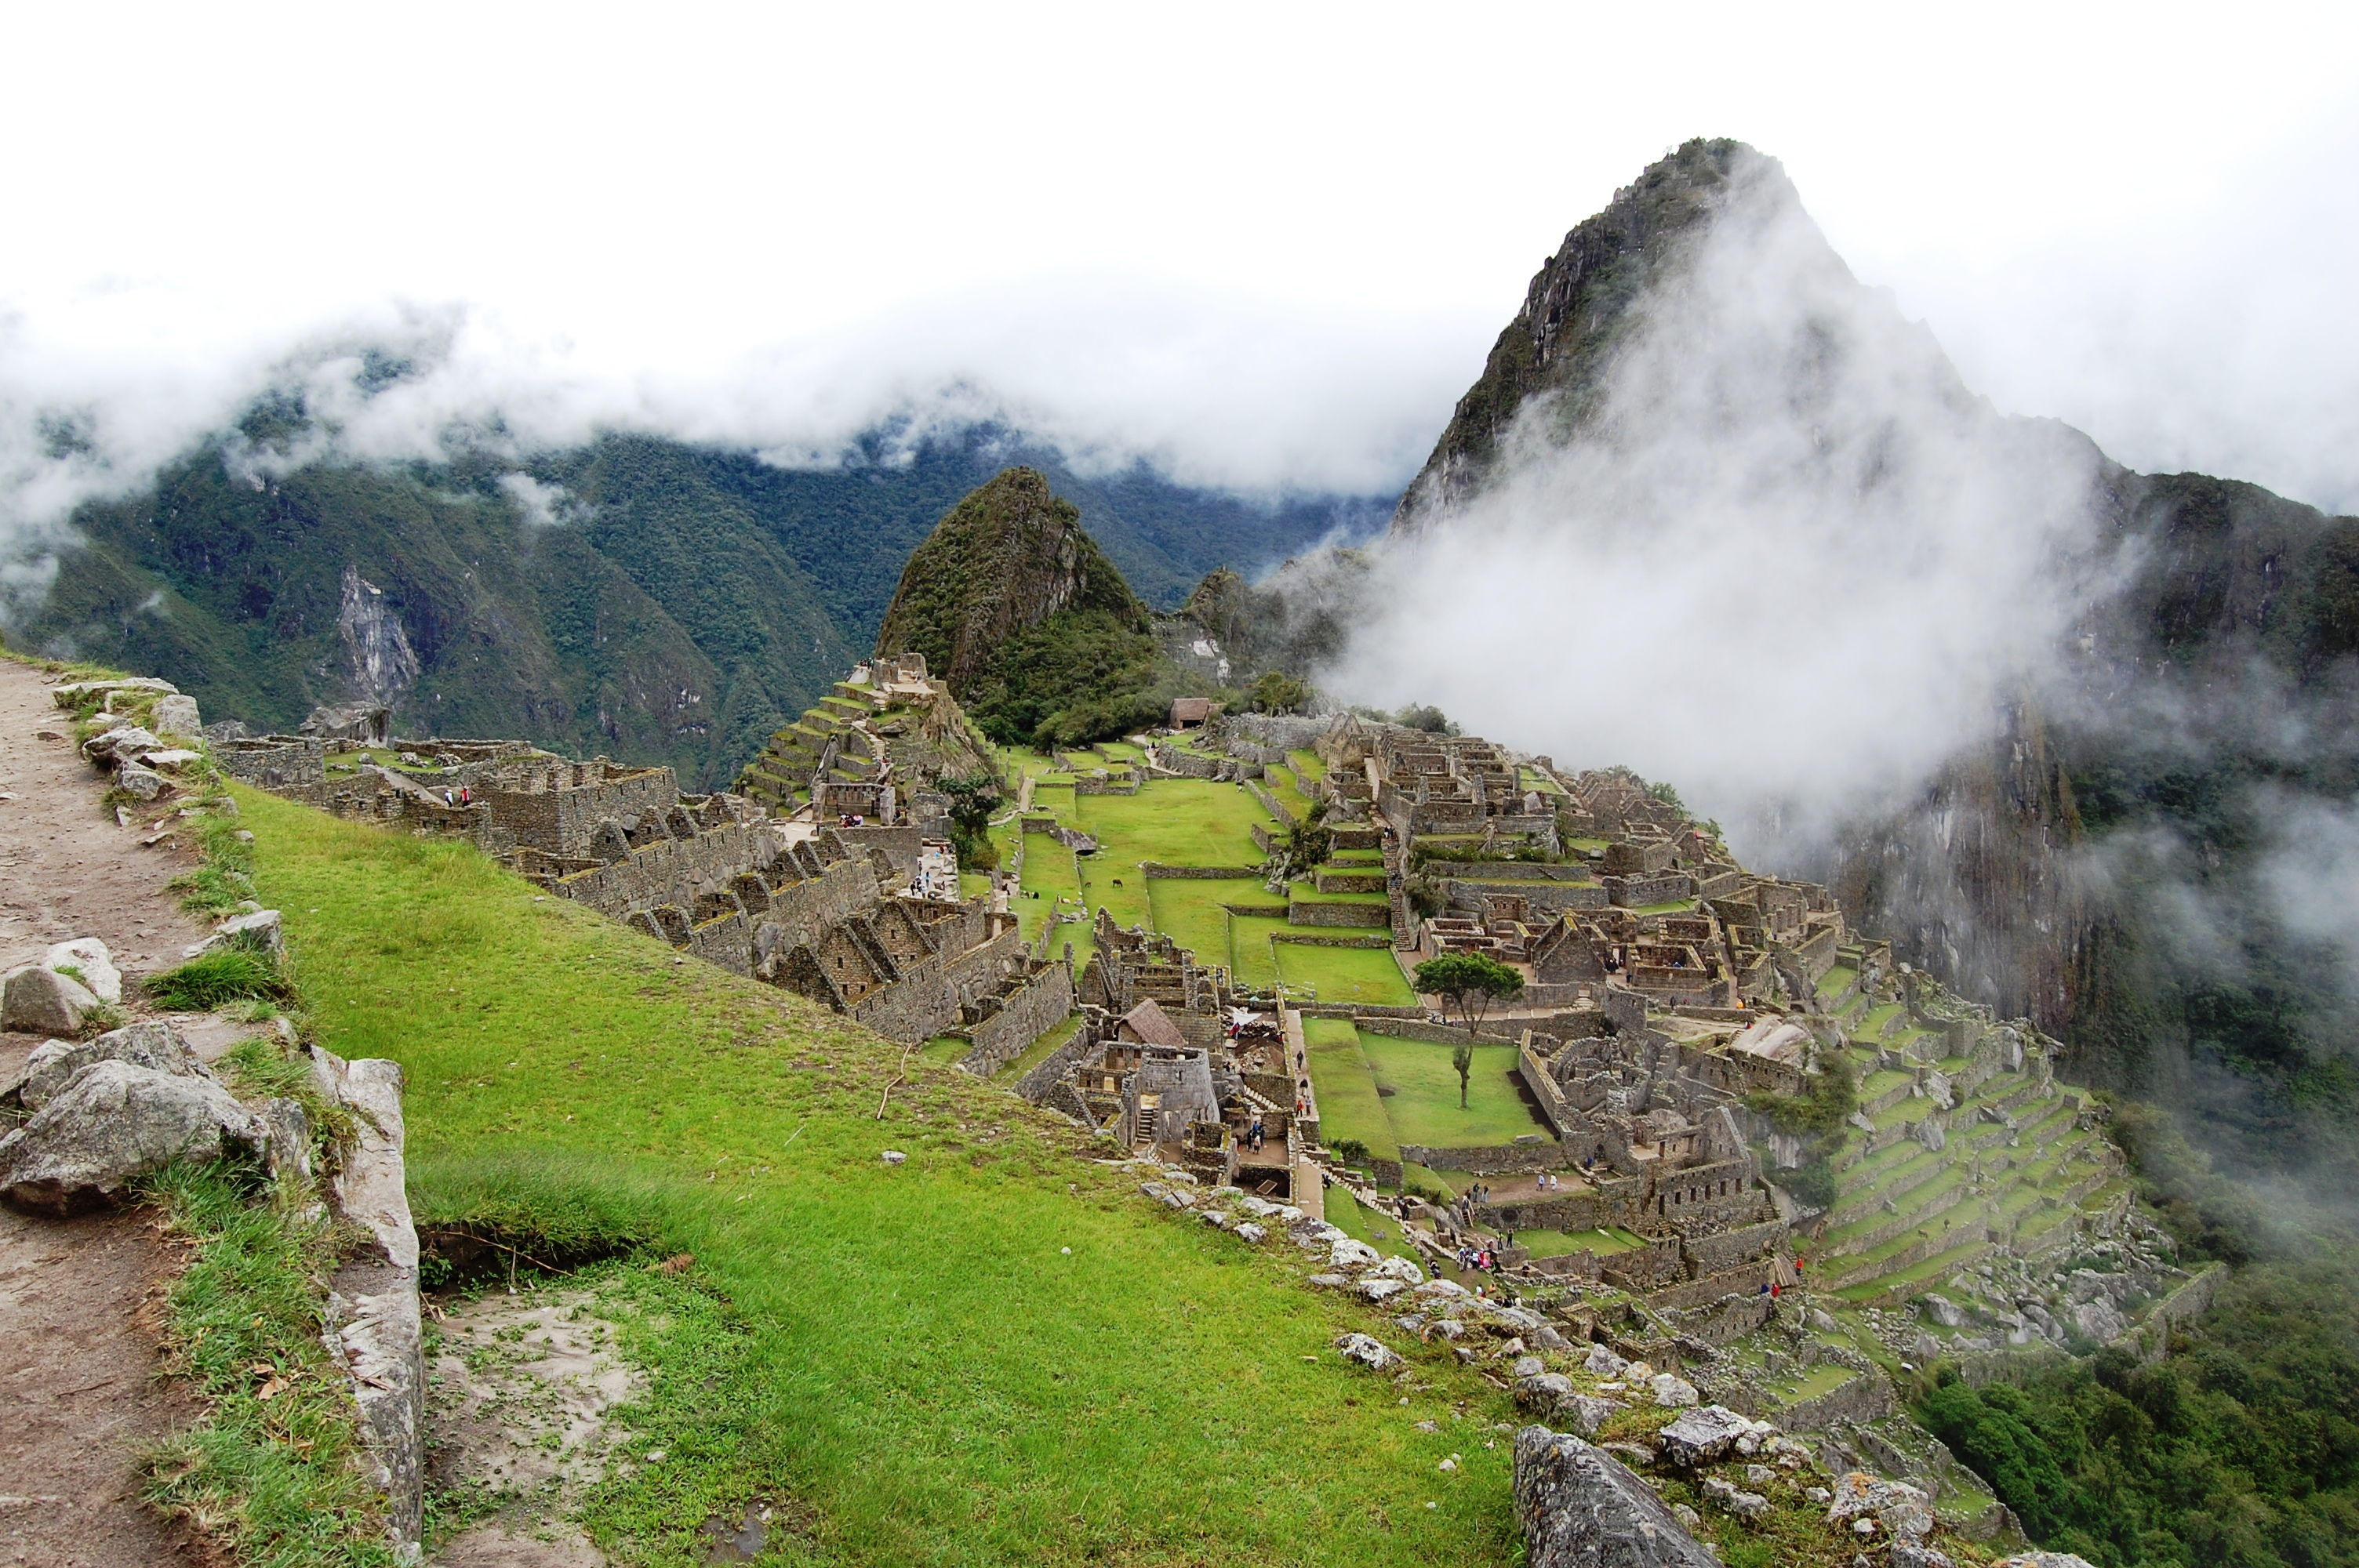 Overlooking the main square of the mountain village of Machu Picchu, Peru.